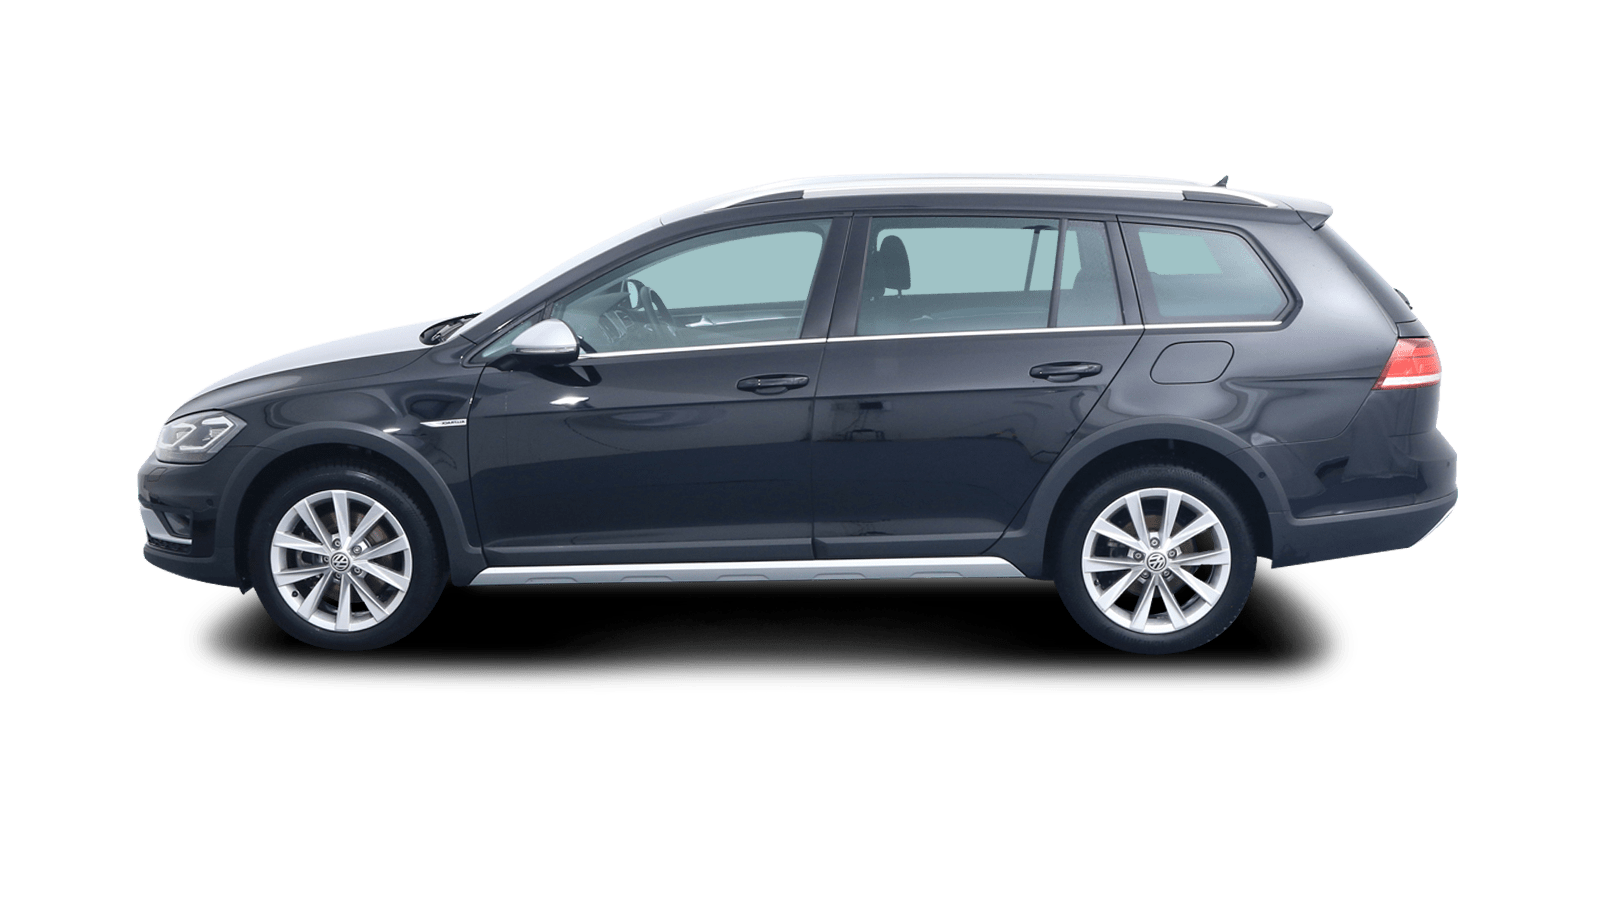 VW Golf Variant Alltrack Black back - Clyde car subscription